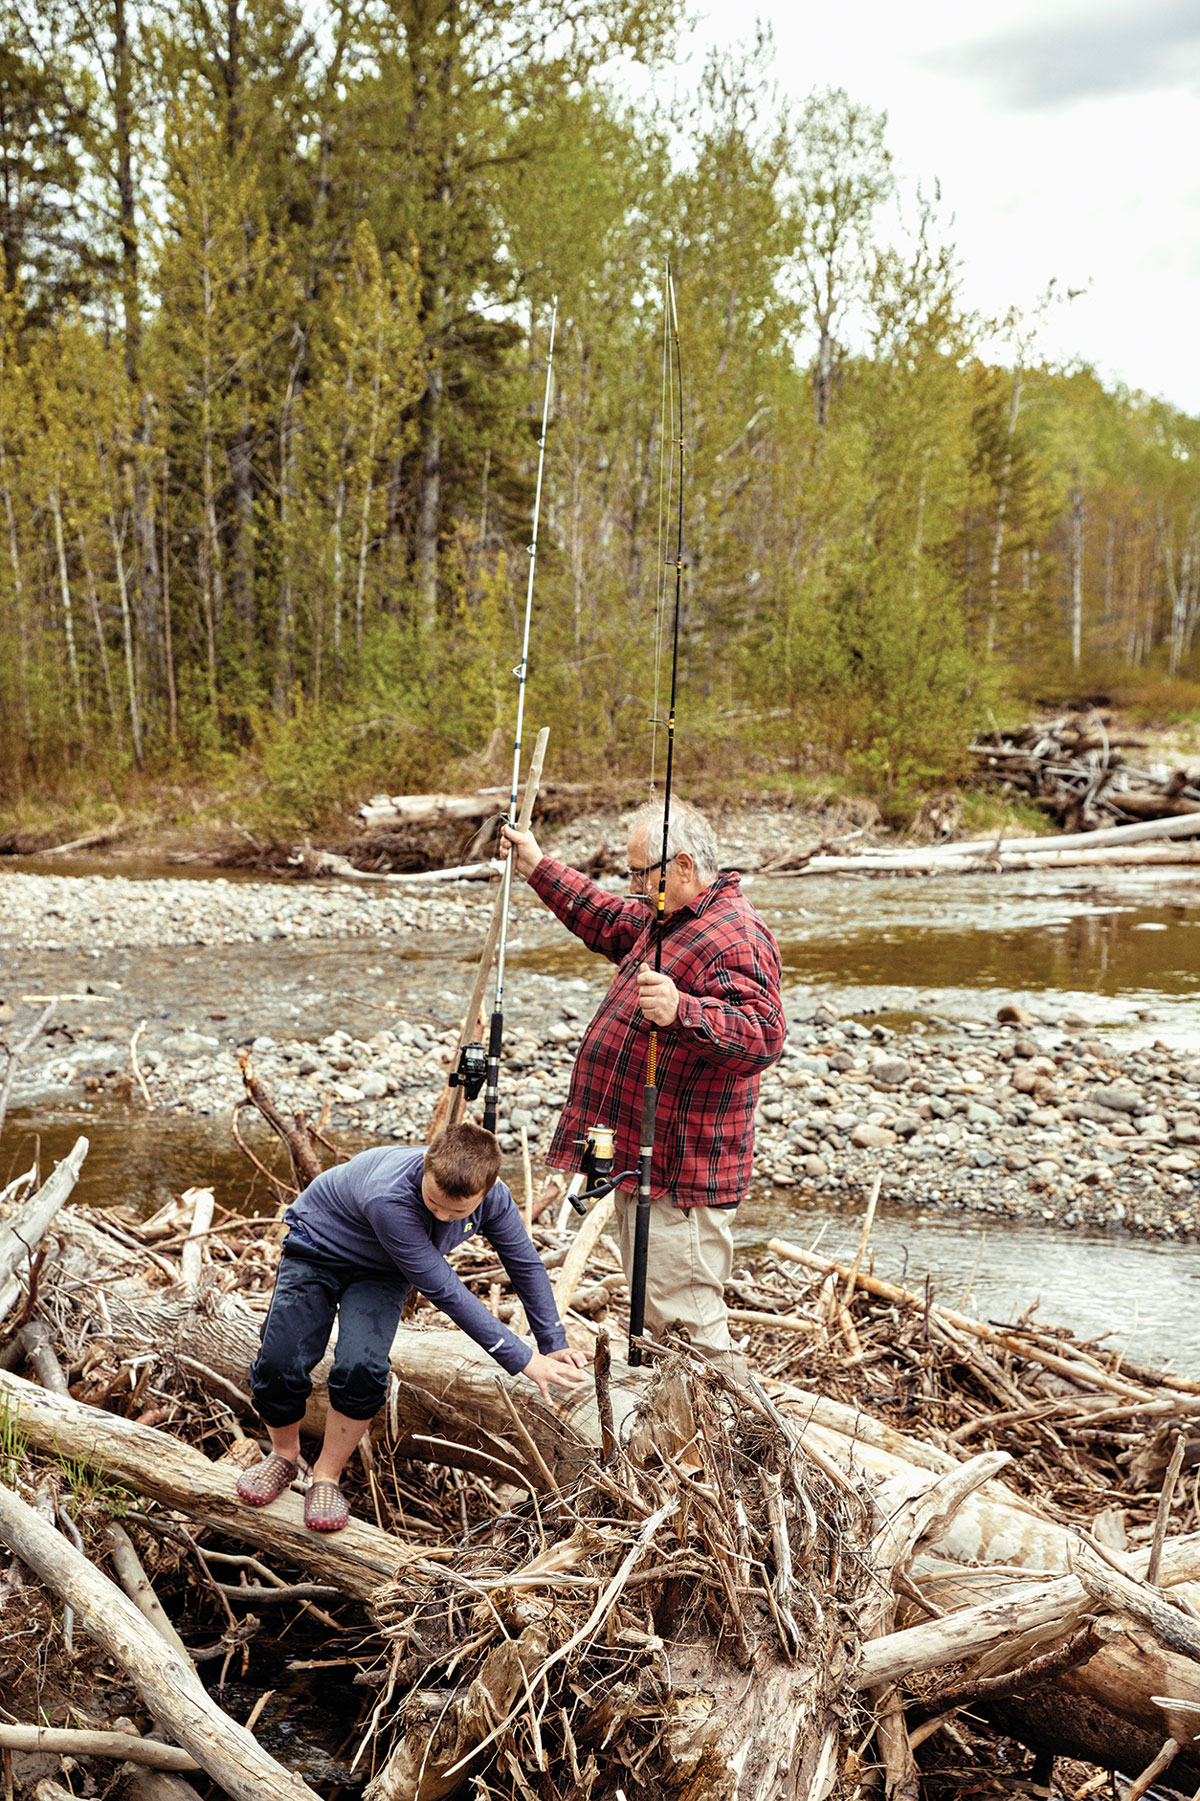 Bubier and his grandson, Eben, fish in Wildcat Brook at the northern edge of the North Maine Woods.